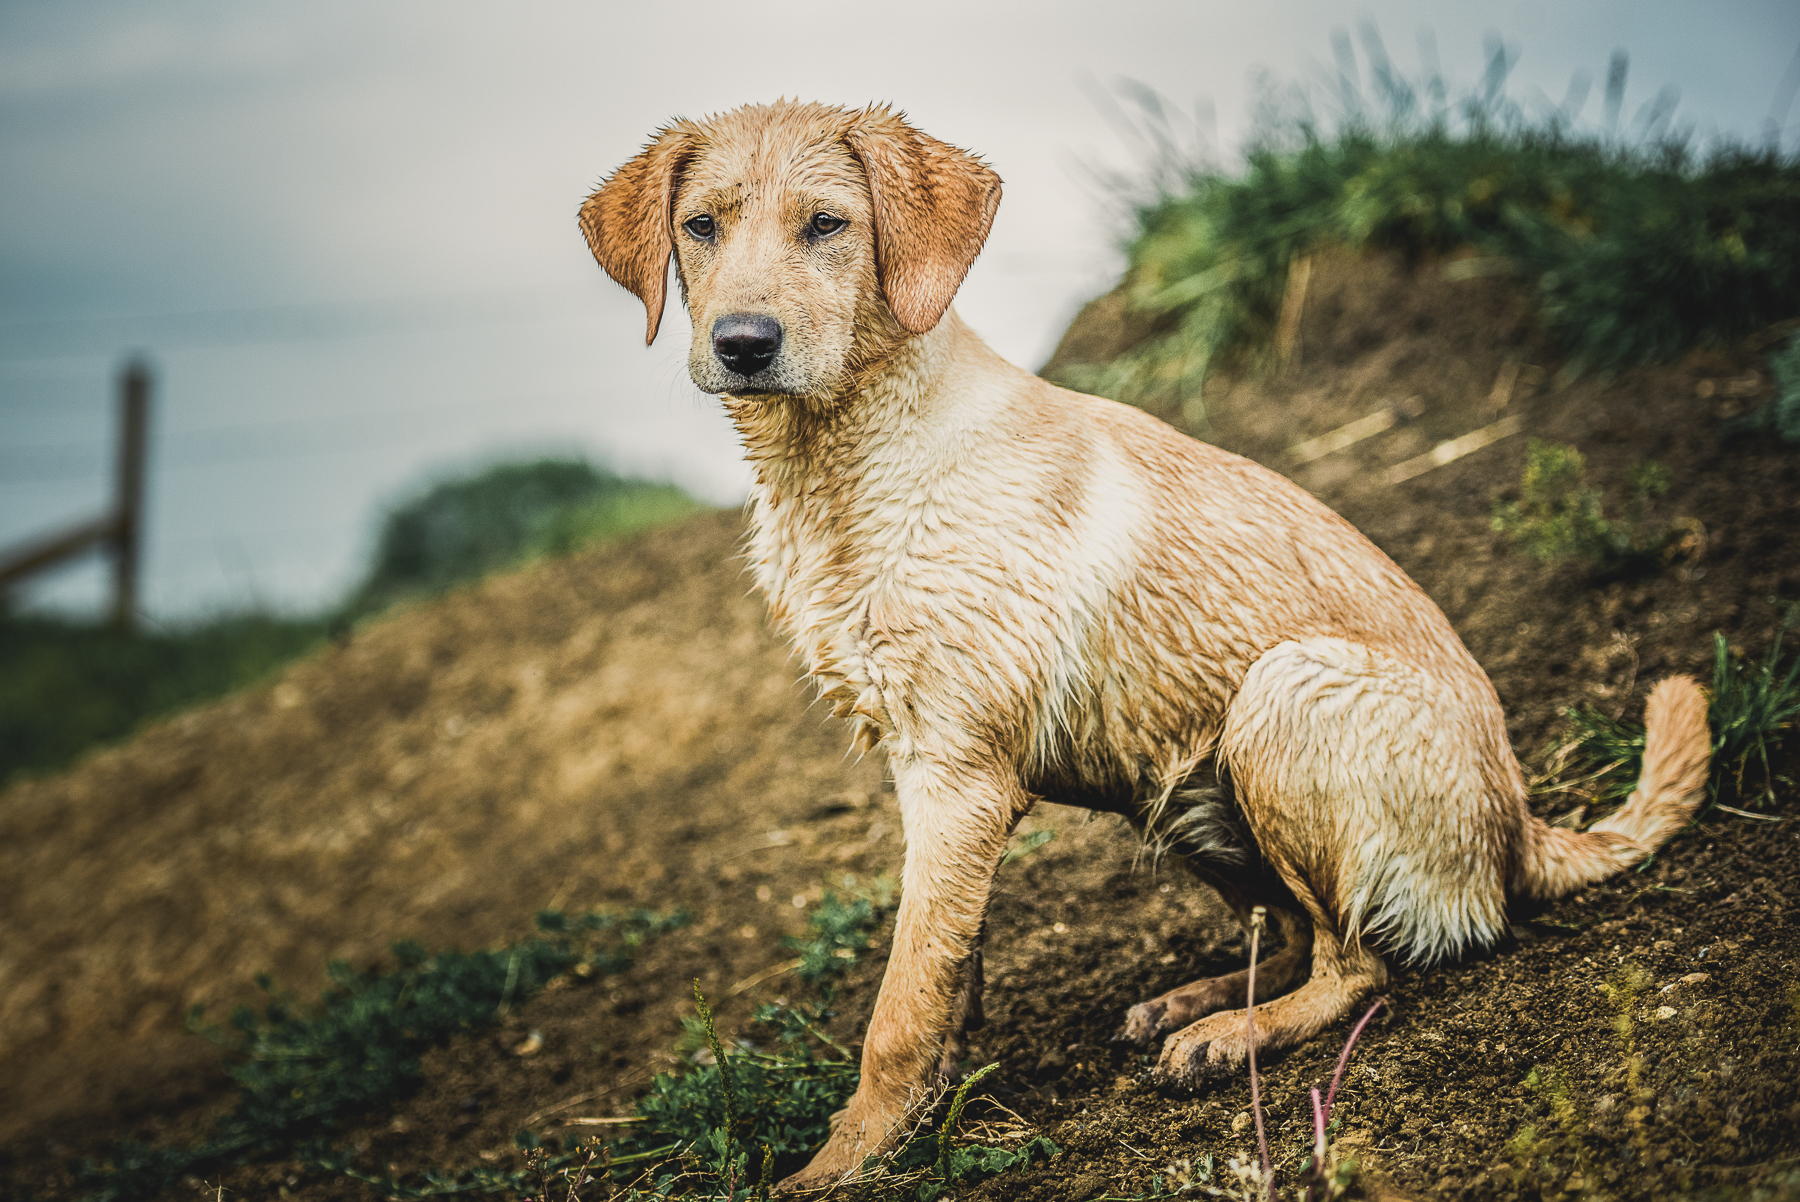 Wet dog sitting on a dirt bank